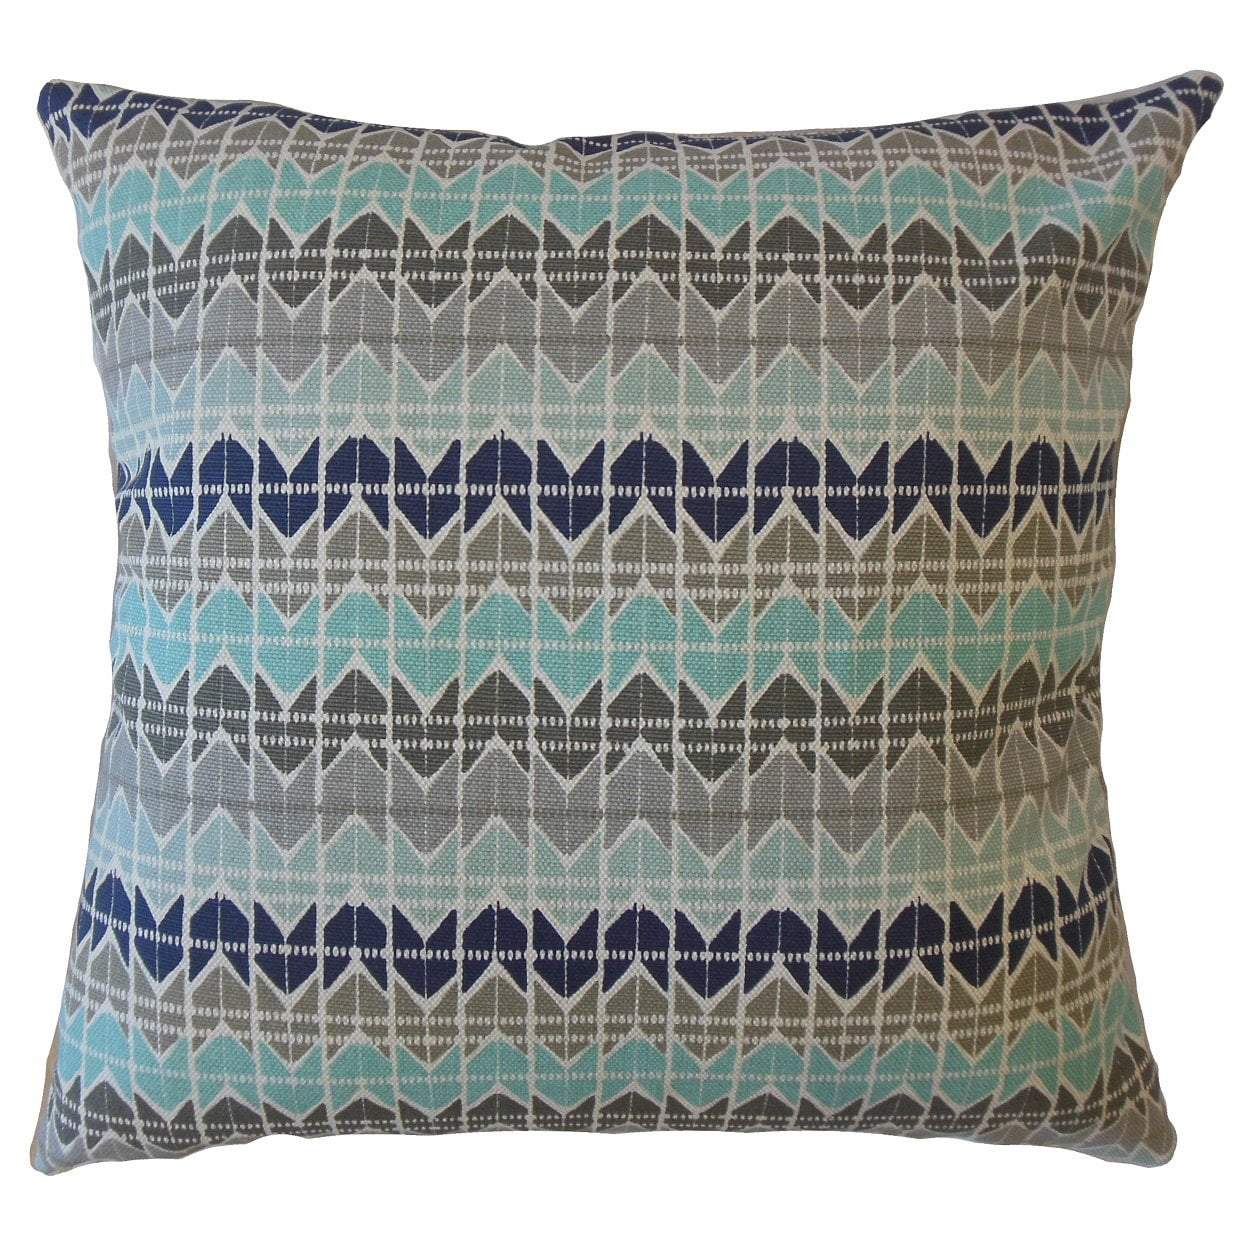 Aqua Cotton Geometric Contemporary Throw Pillow Cover